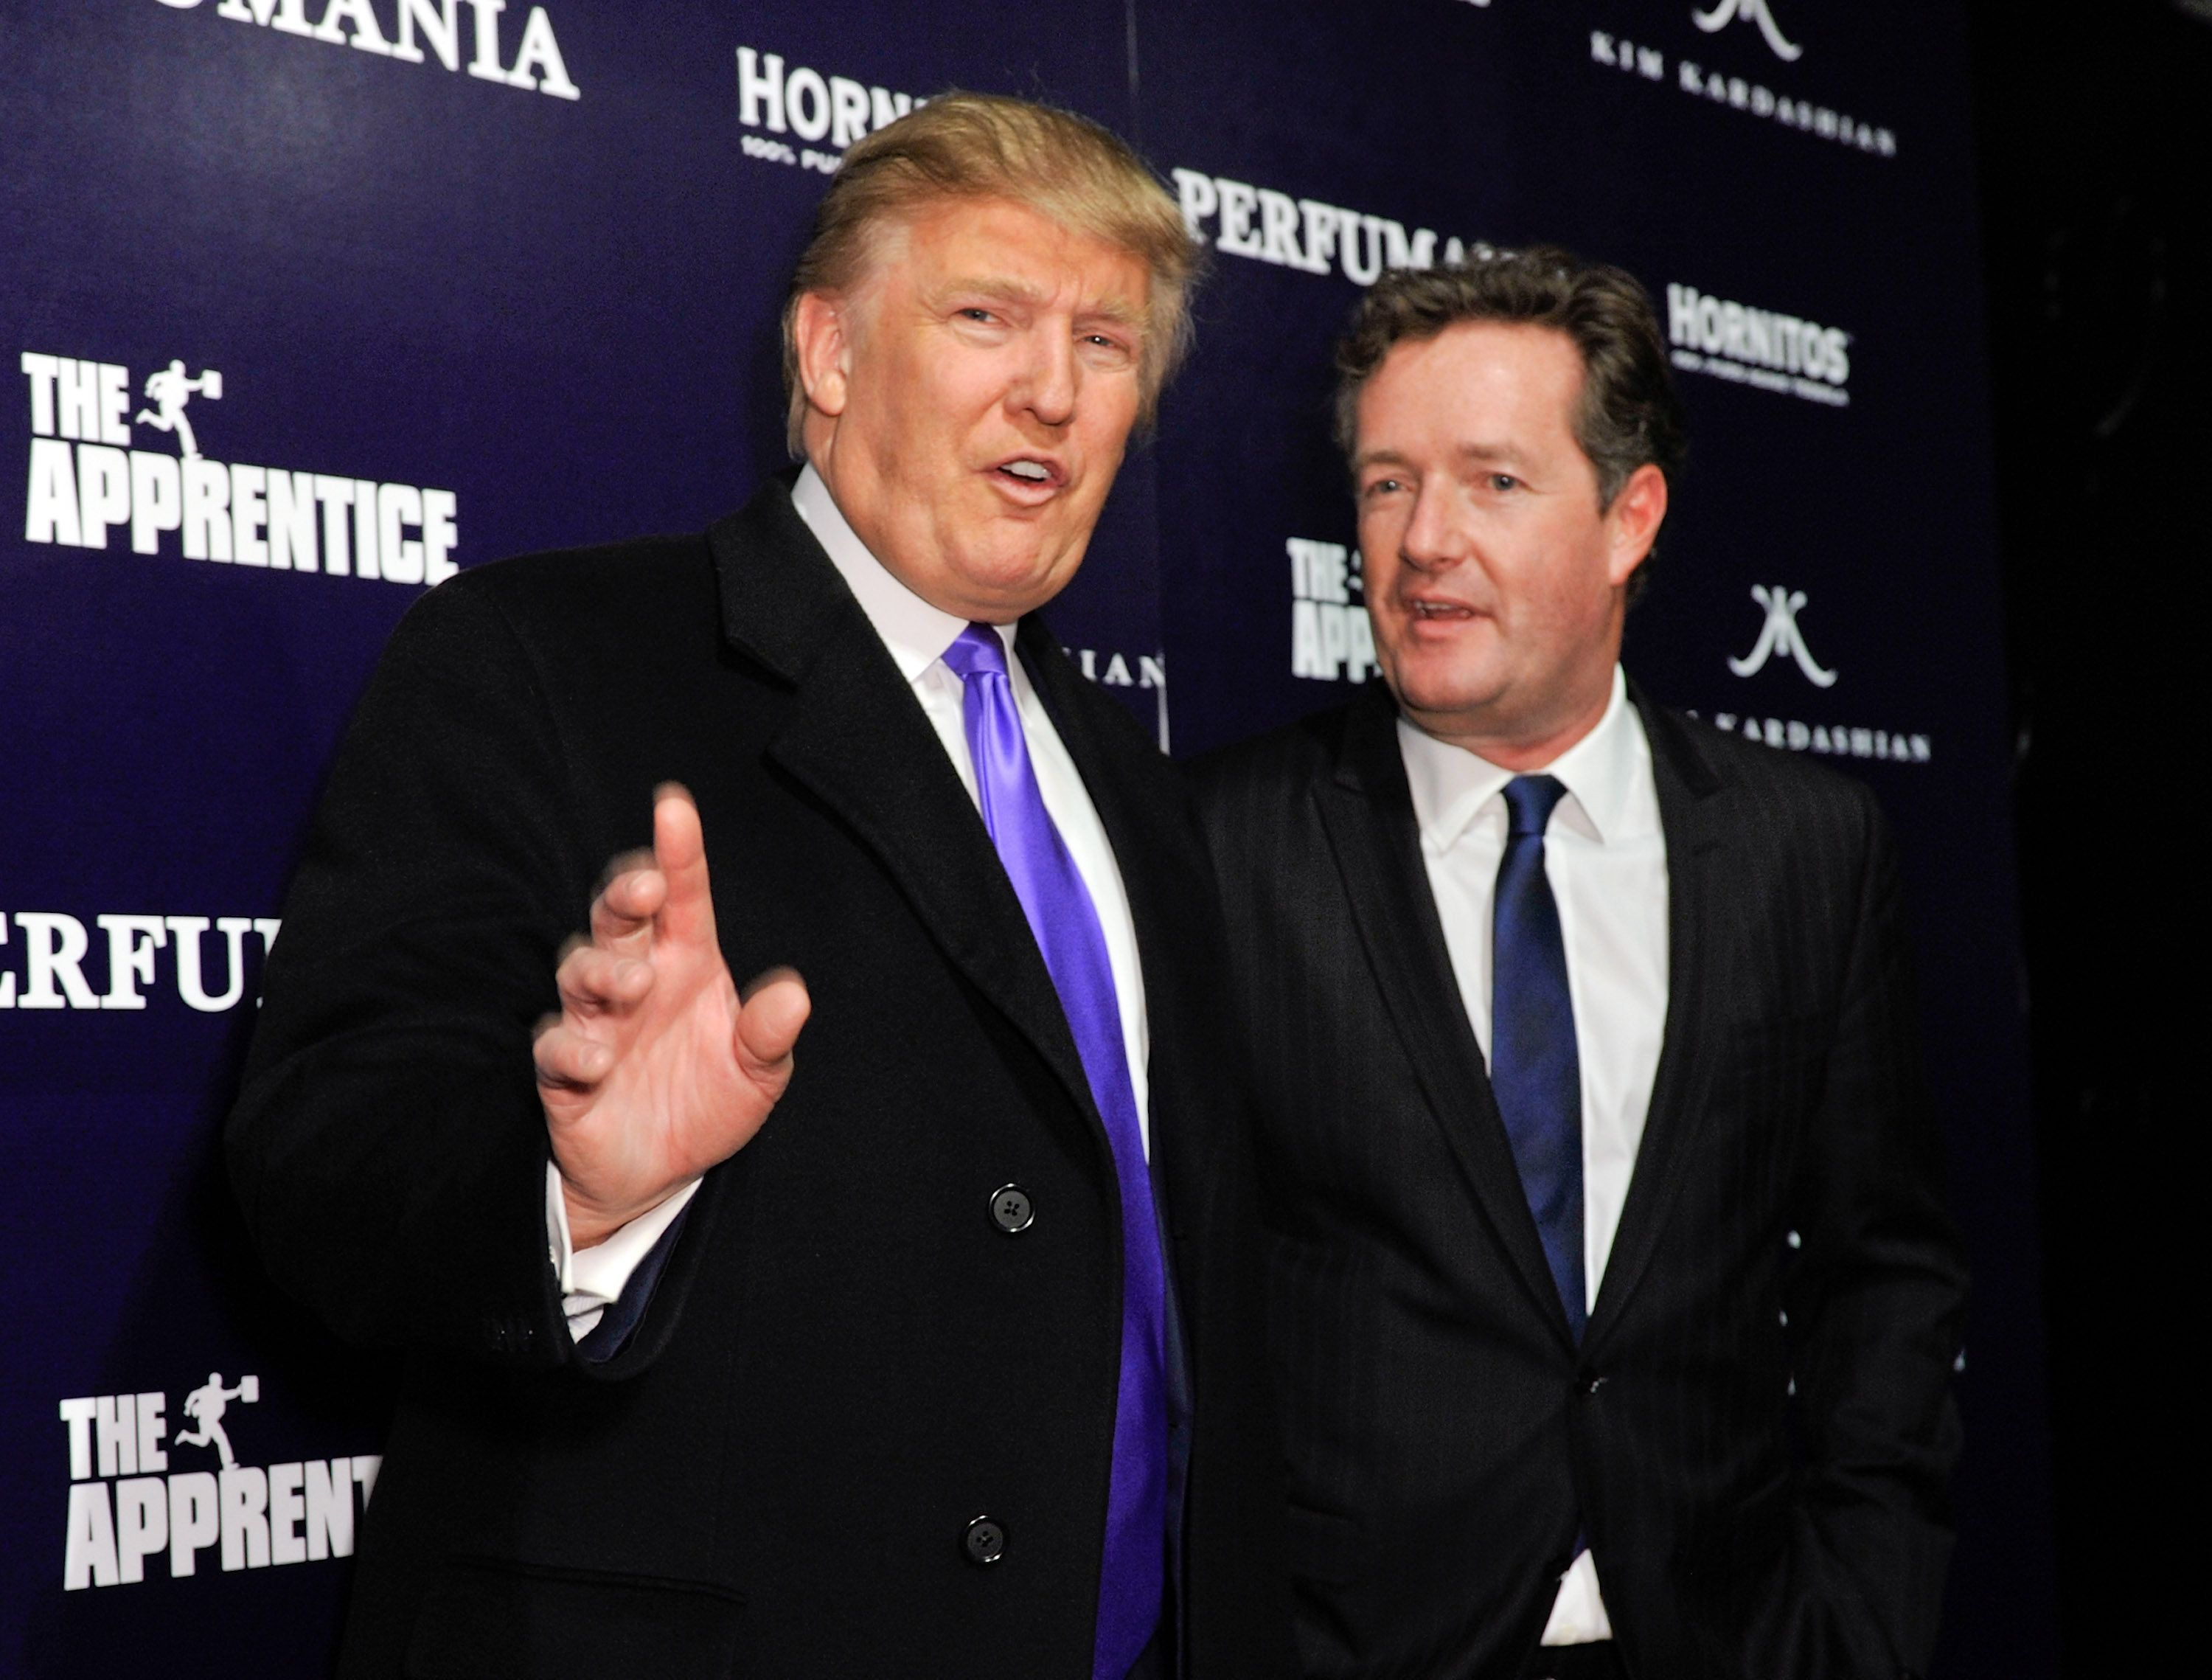 Donald Trump and Piers Morgan celebrate Perfumania's appearance with Kim Kardashian on 'The Apprentice' at Provacateur on November 10, 2010 in New York City. (Photo by D Dipasupil/WireImage)